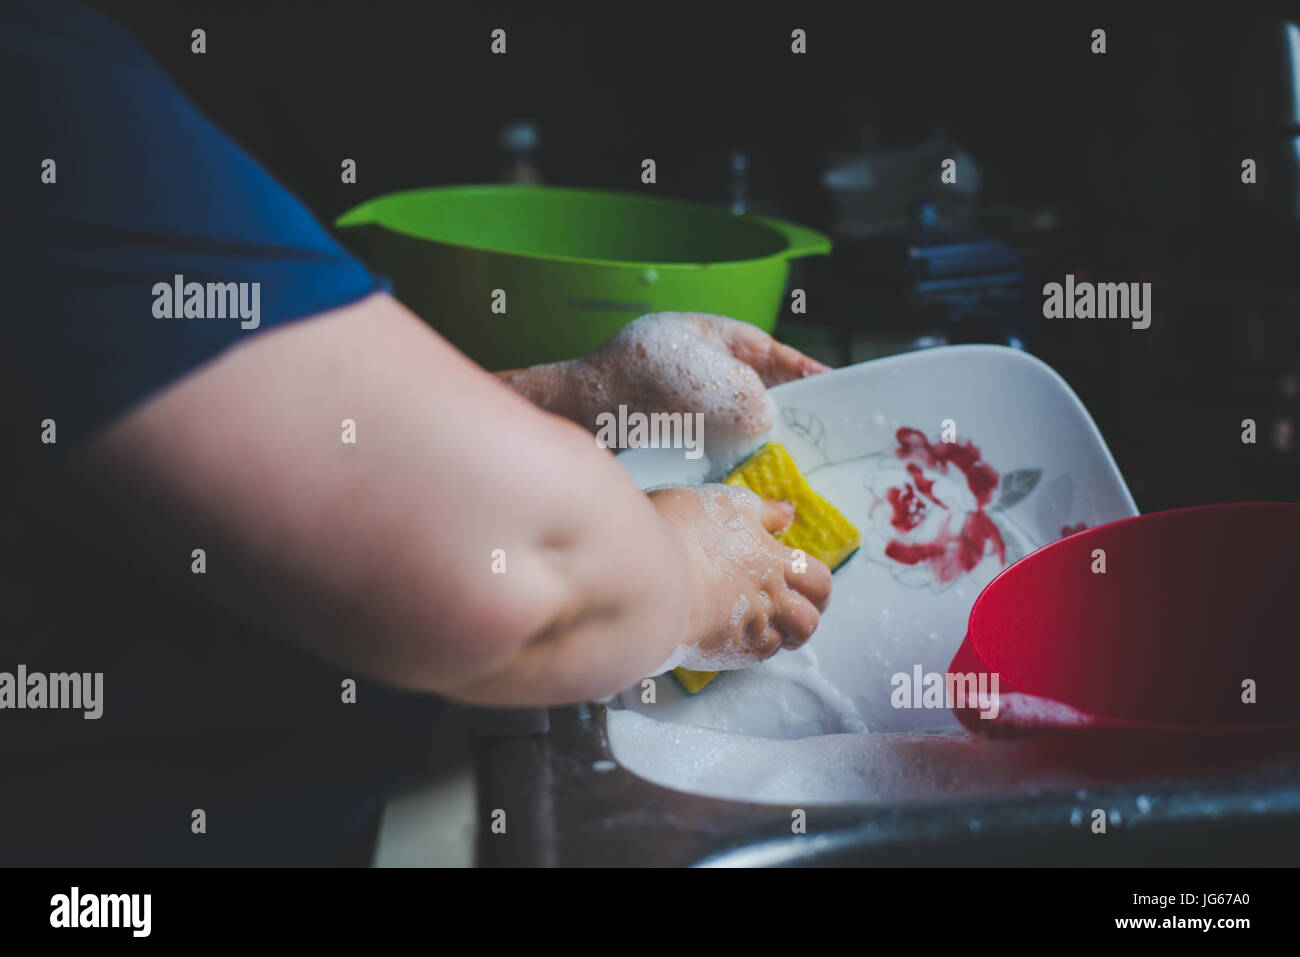 A woman washing dishes at a sink. - Stock Image